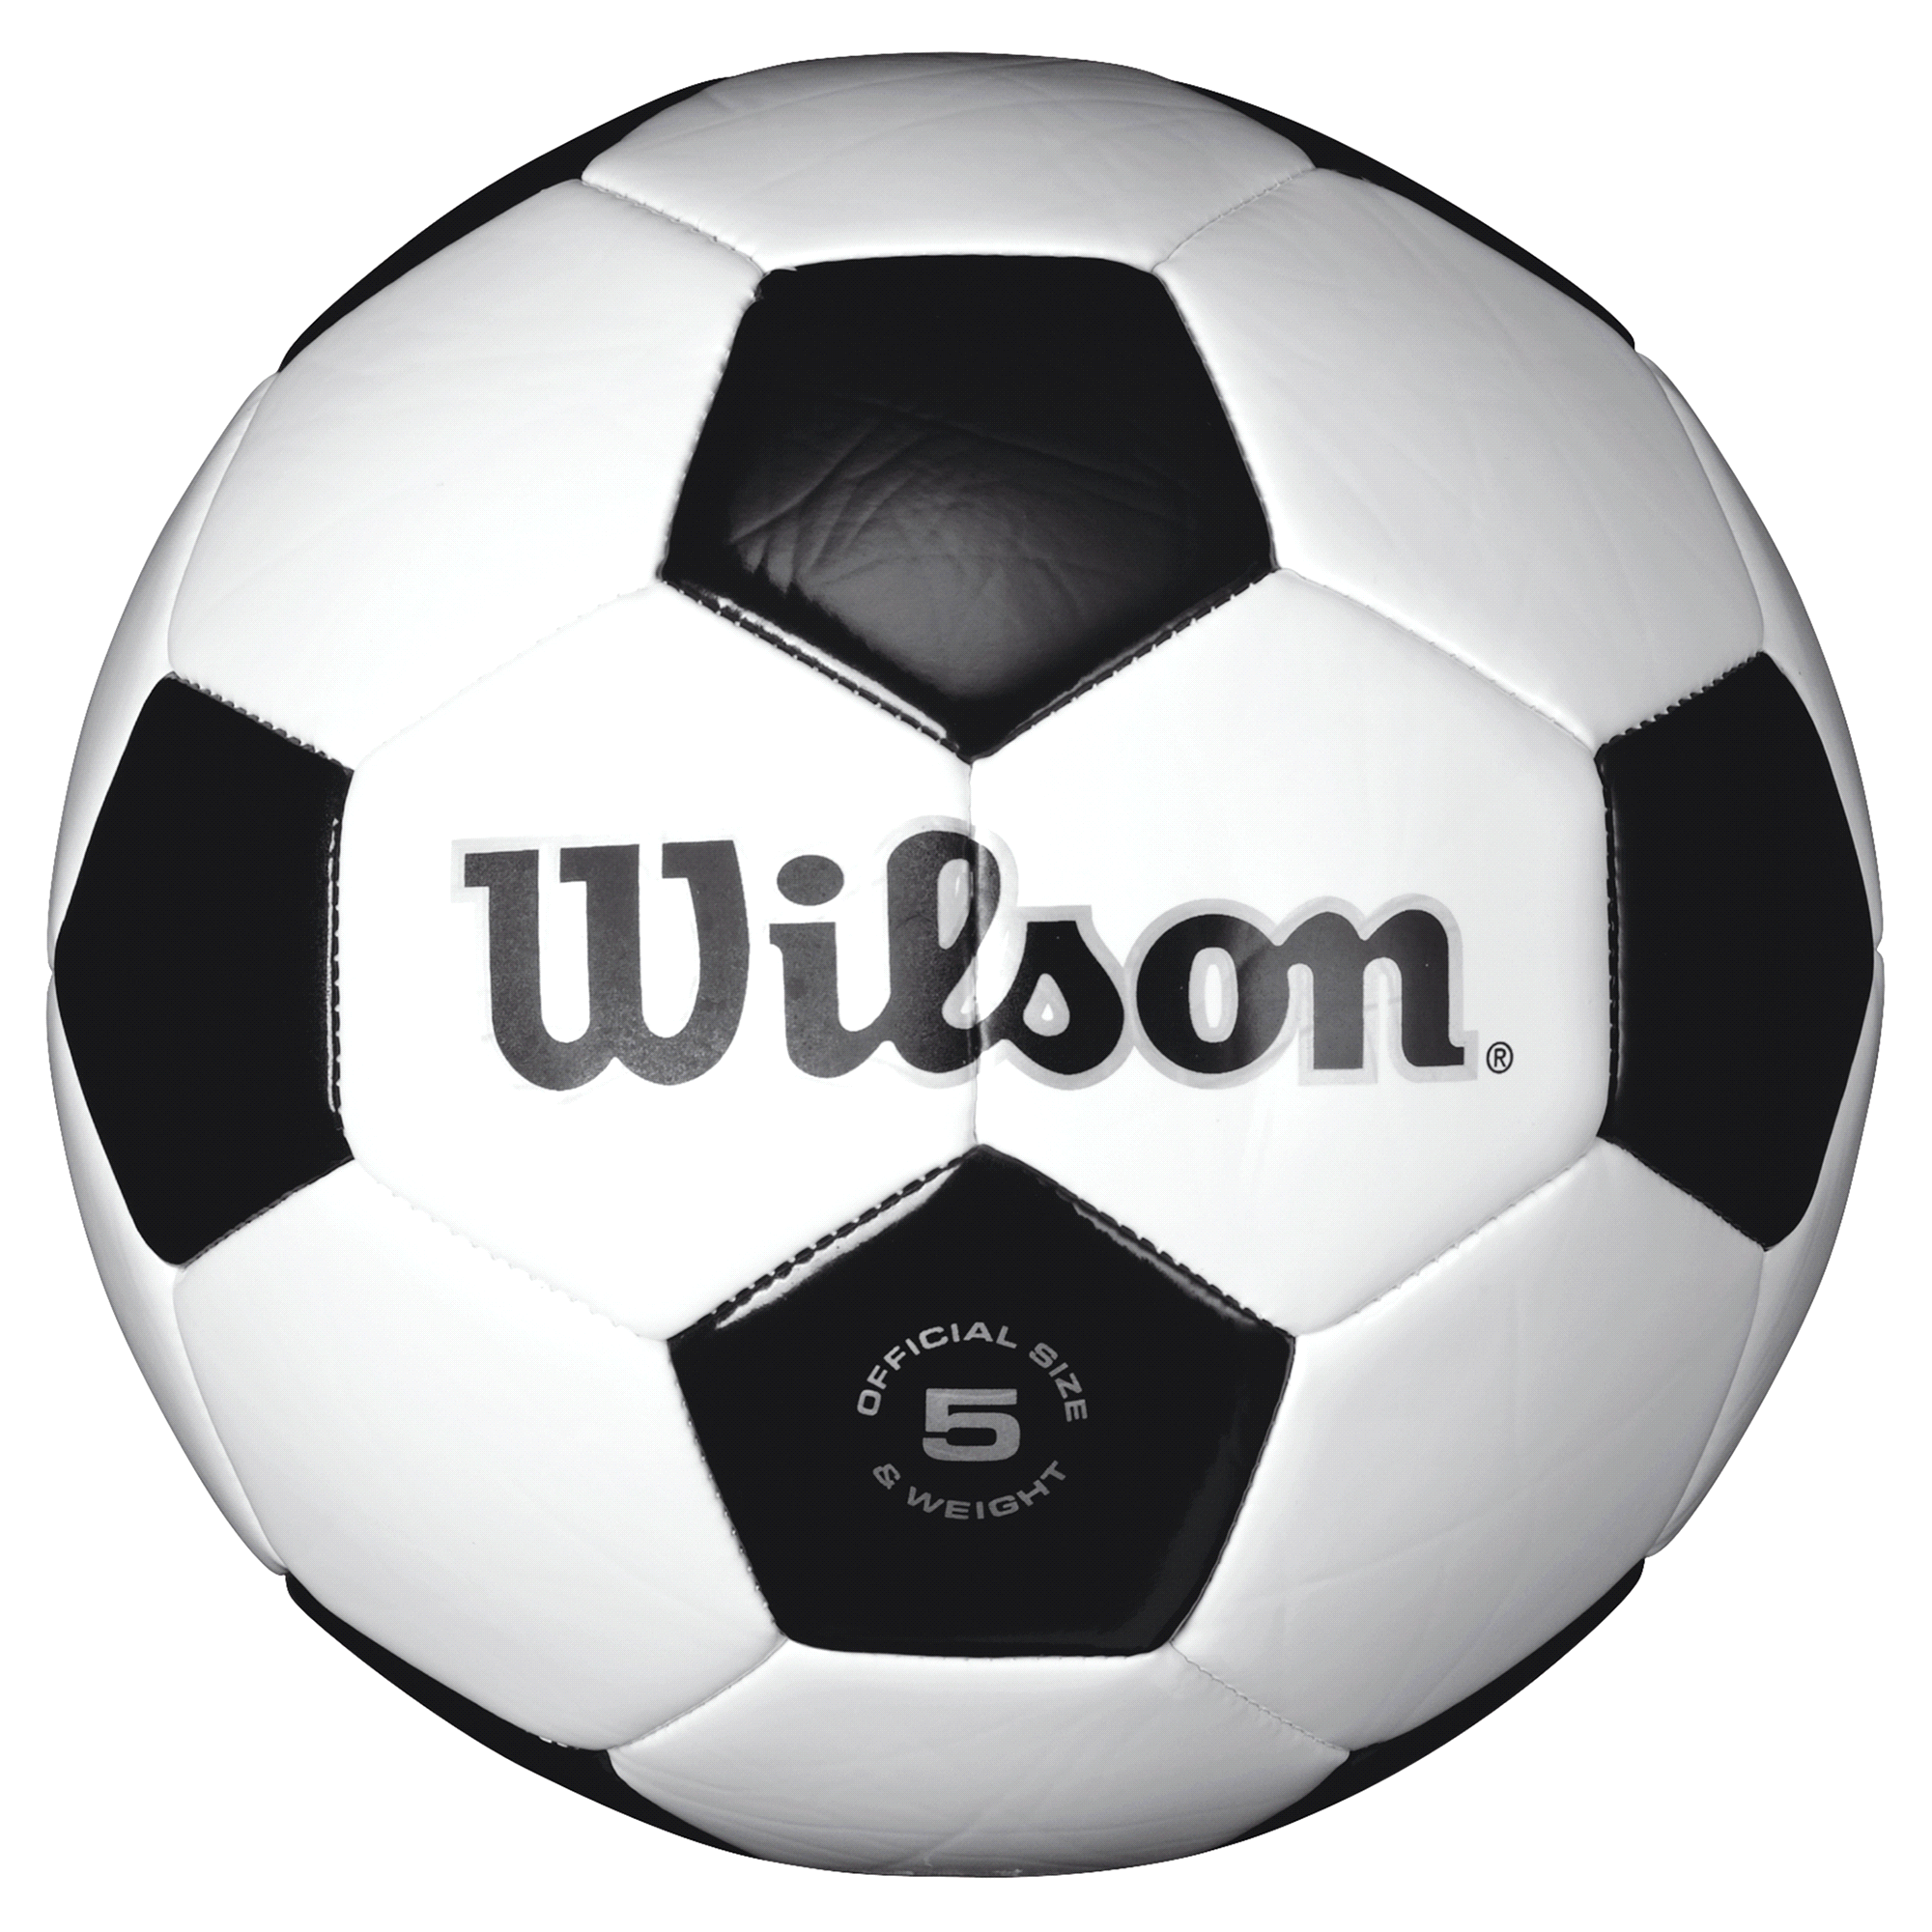 Soccer Bathroom Accessories Wilson Traditional Soccer Ball Size 5 Meijercom